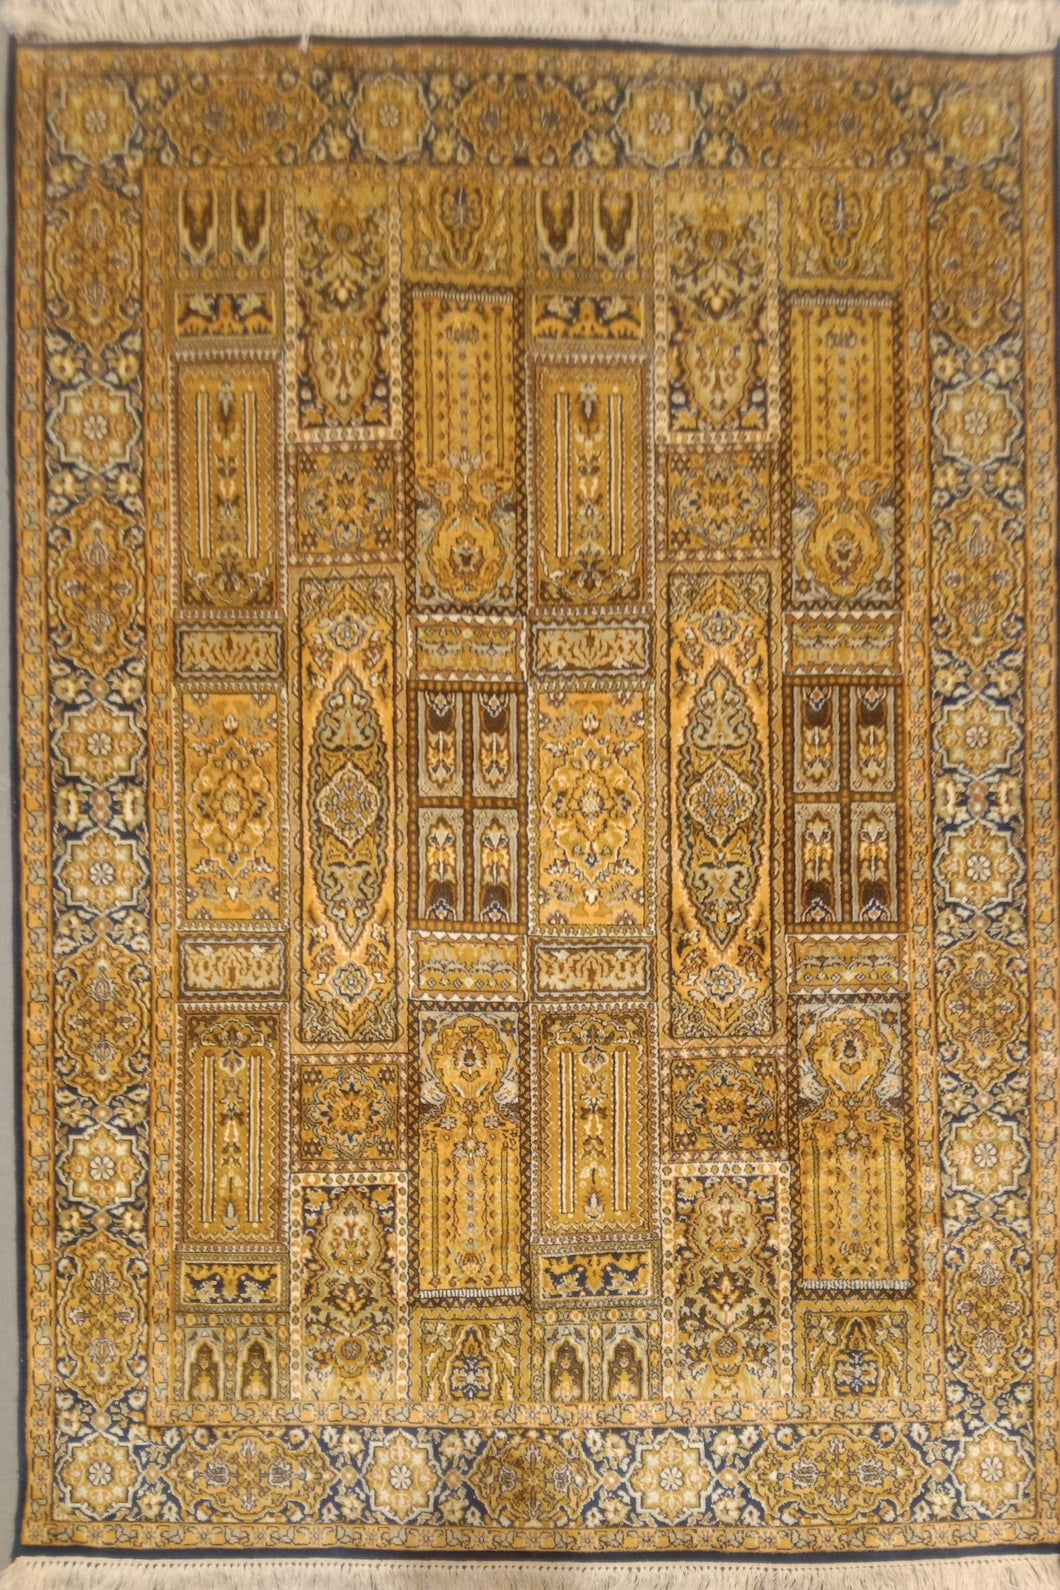 The Rugs Cafe Carpets 4x6 Mughal Garden Design: Silk Rug